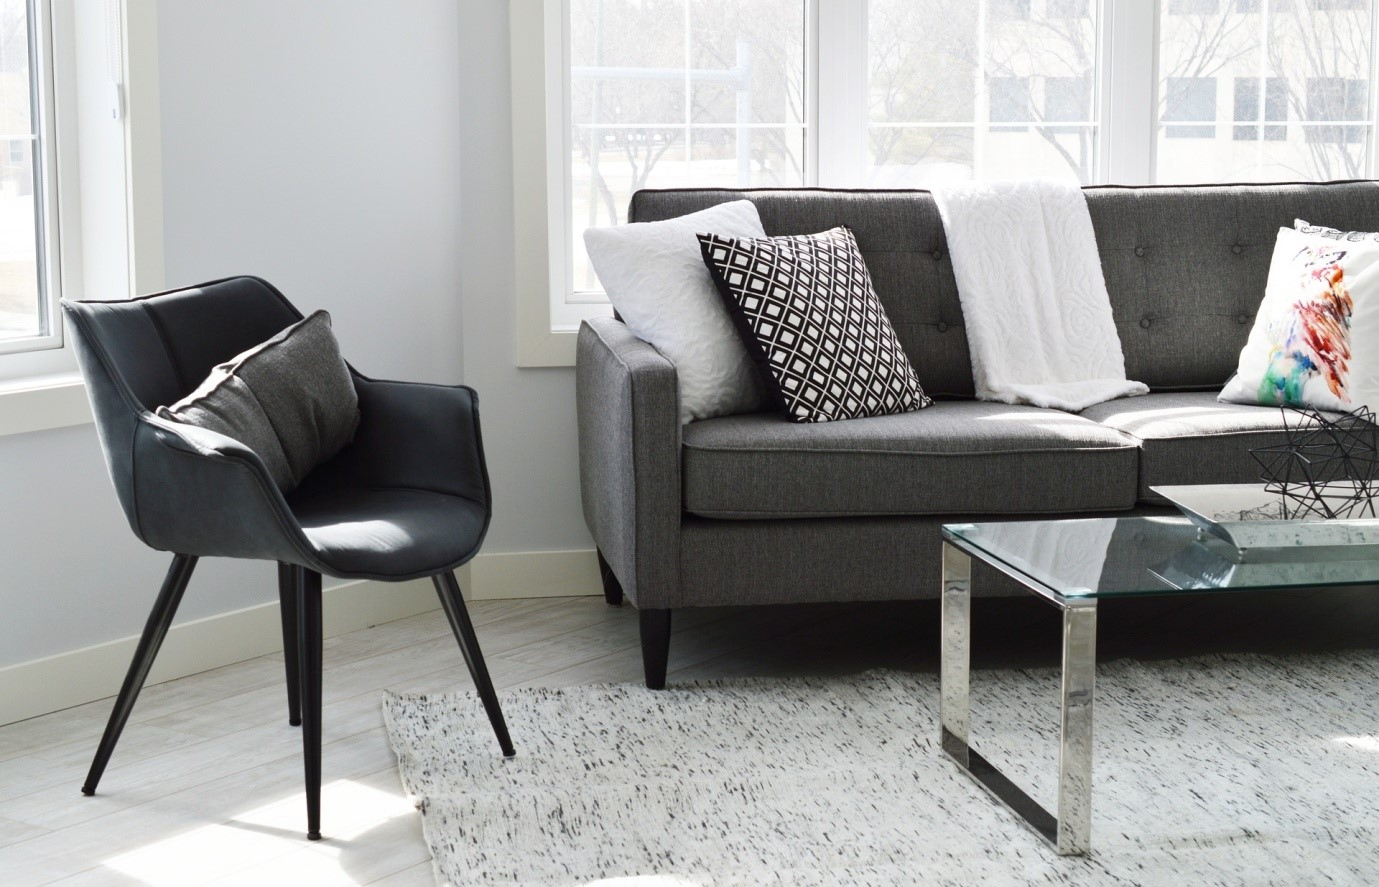 5 Pieces of Furniture You Can Use To Decorate Your Small Apartment